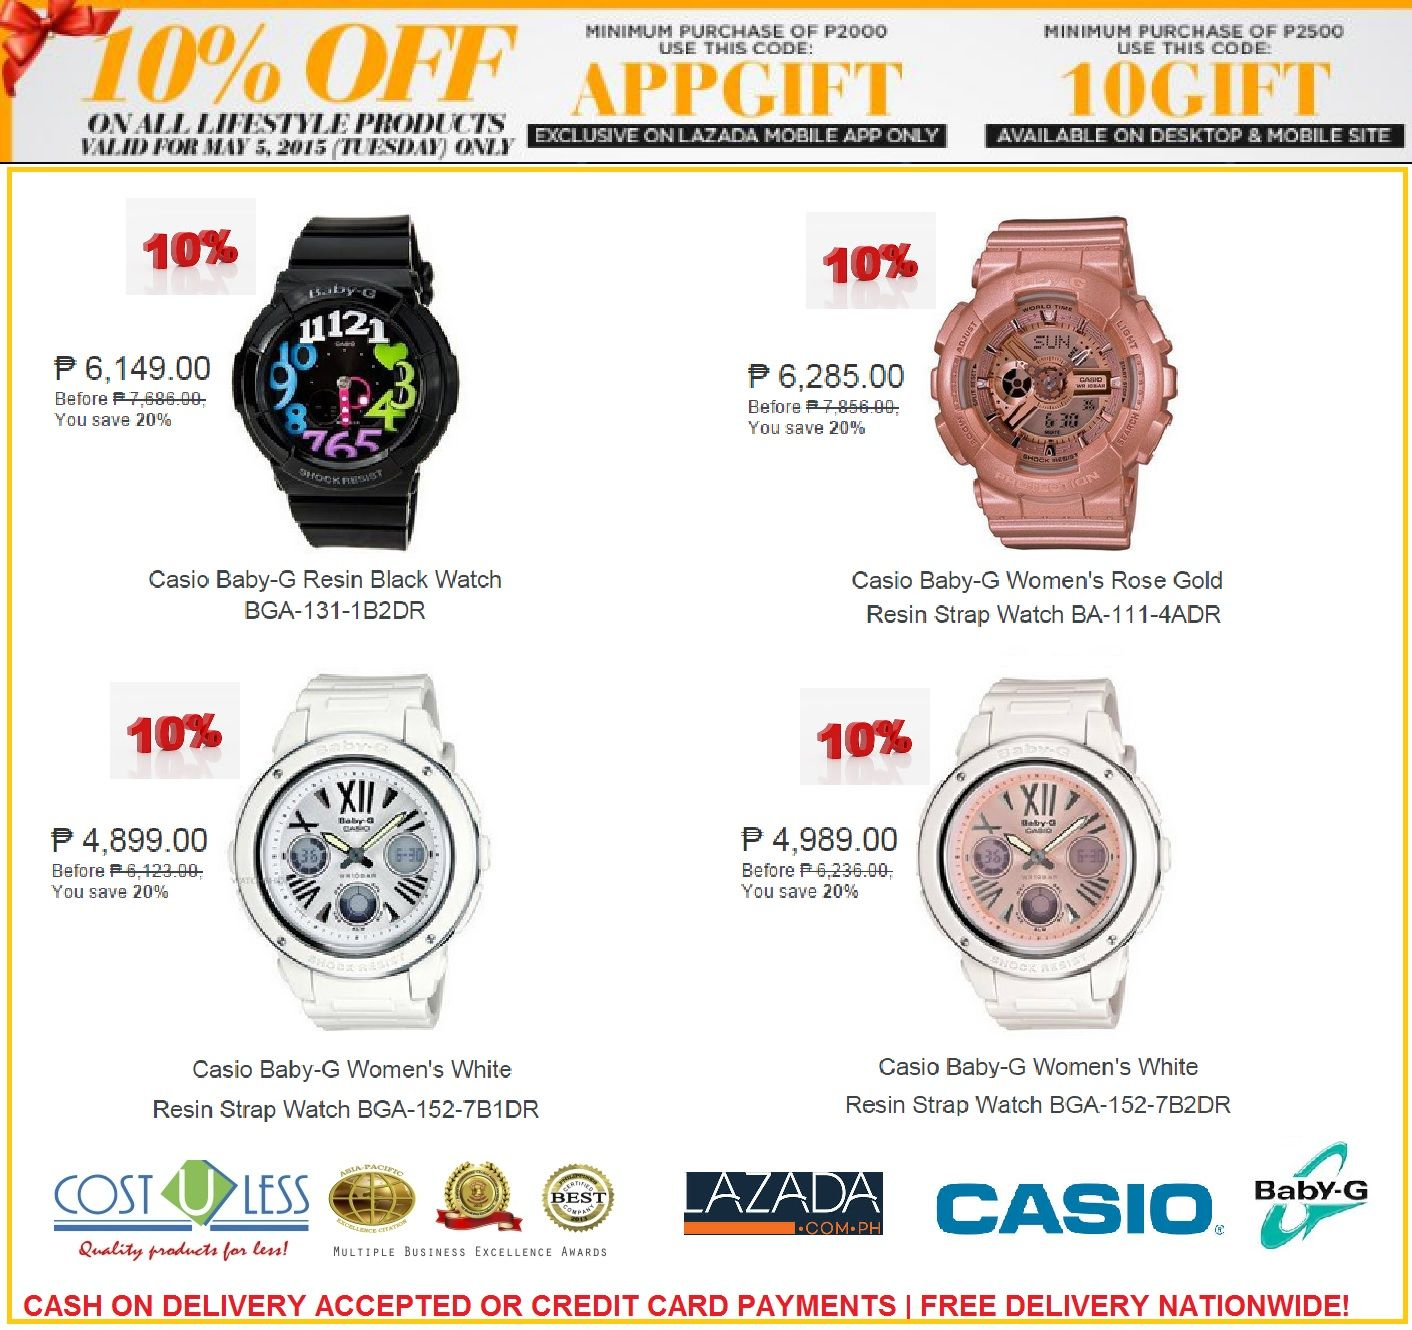 Original Casio Watches Sale Lazada Shop Online Tuesday Promo Take Camera Circuit Board Promotiononline Shopping For Promotional 10 Off